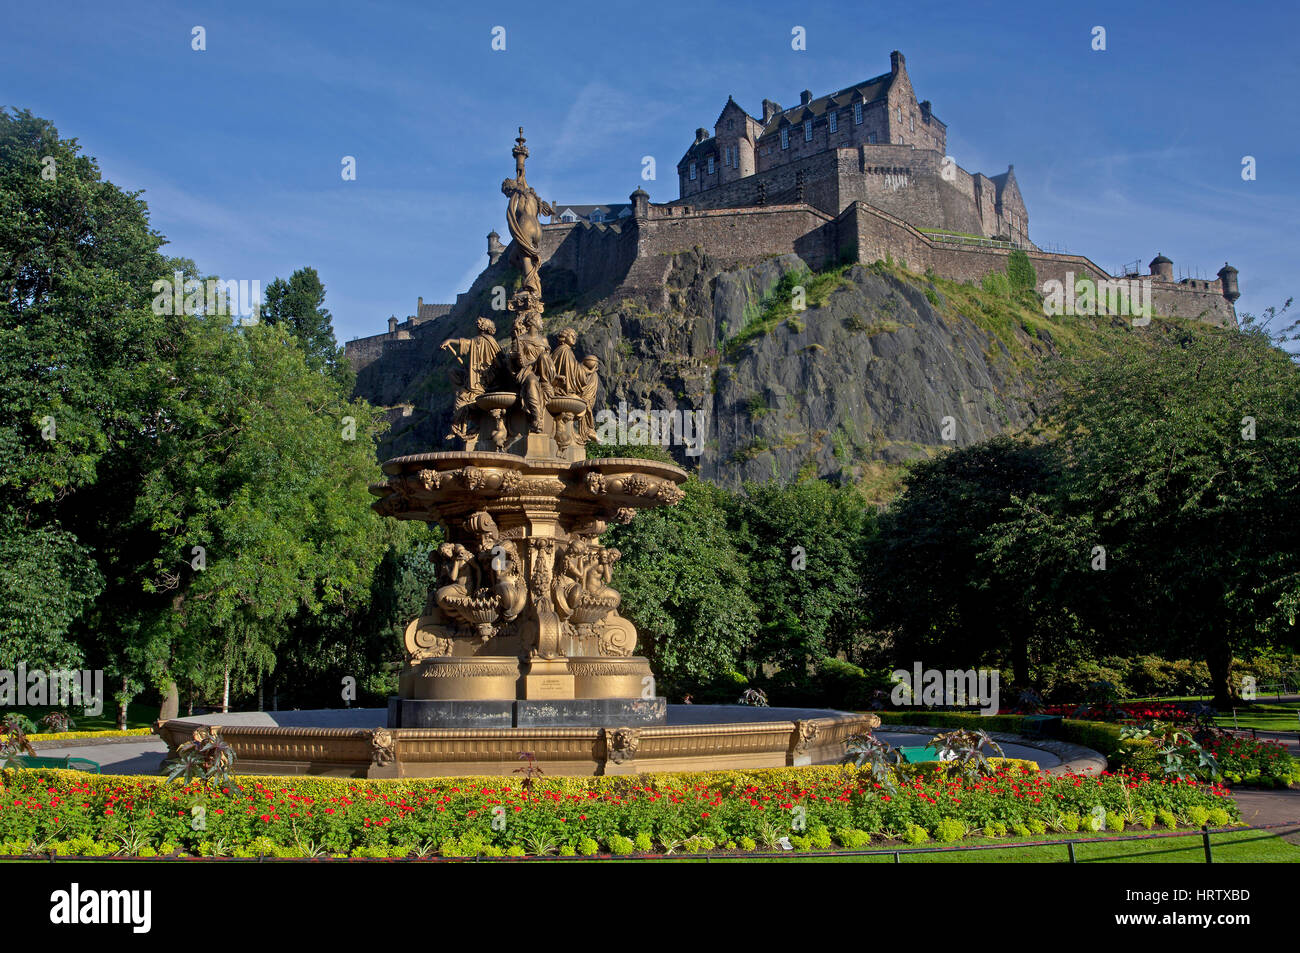 Edinburgh Castle from the fountain in Princes Street Gardens - Stock Image